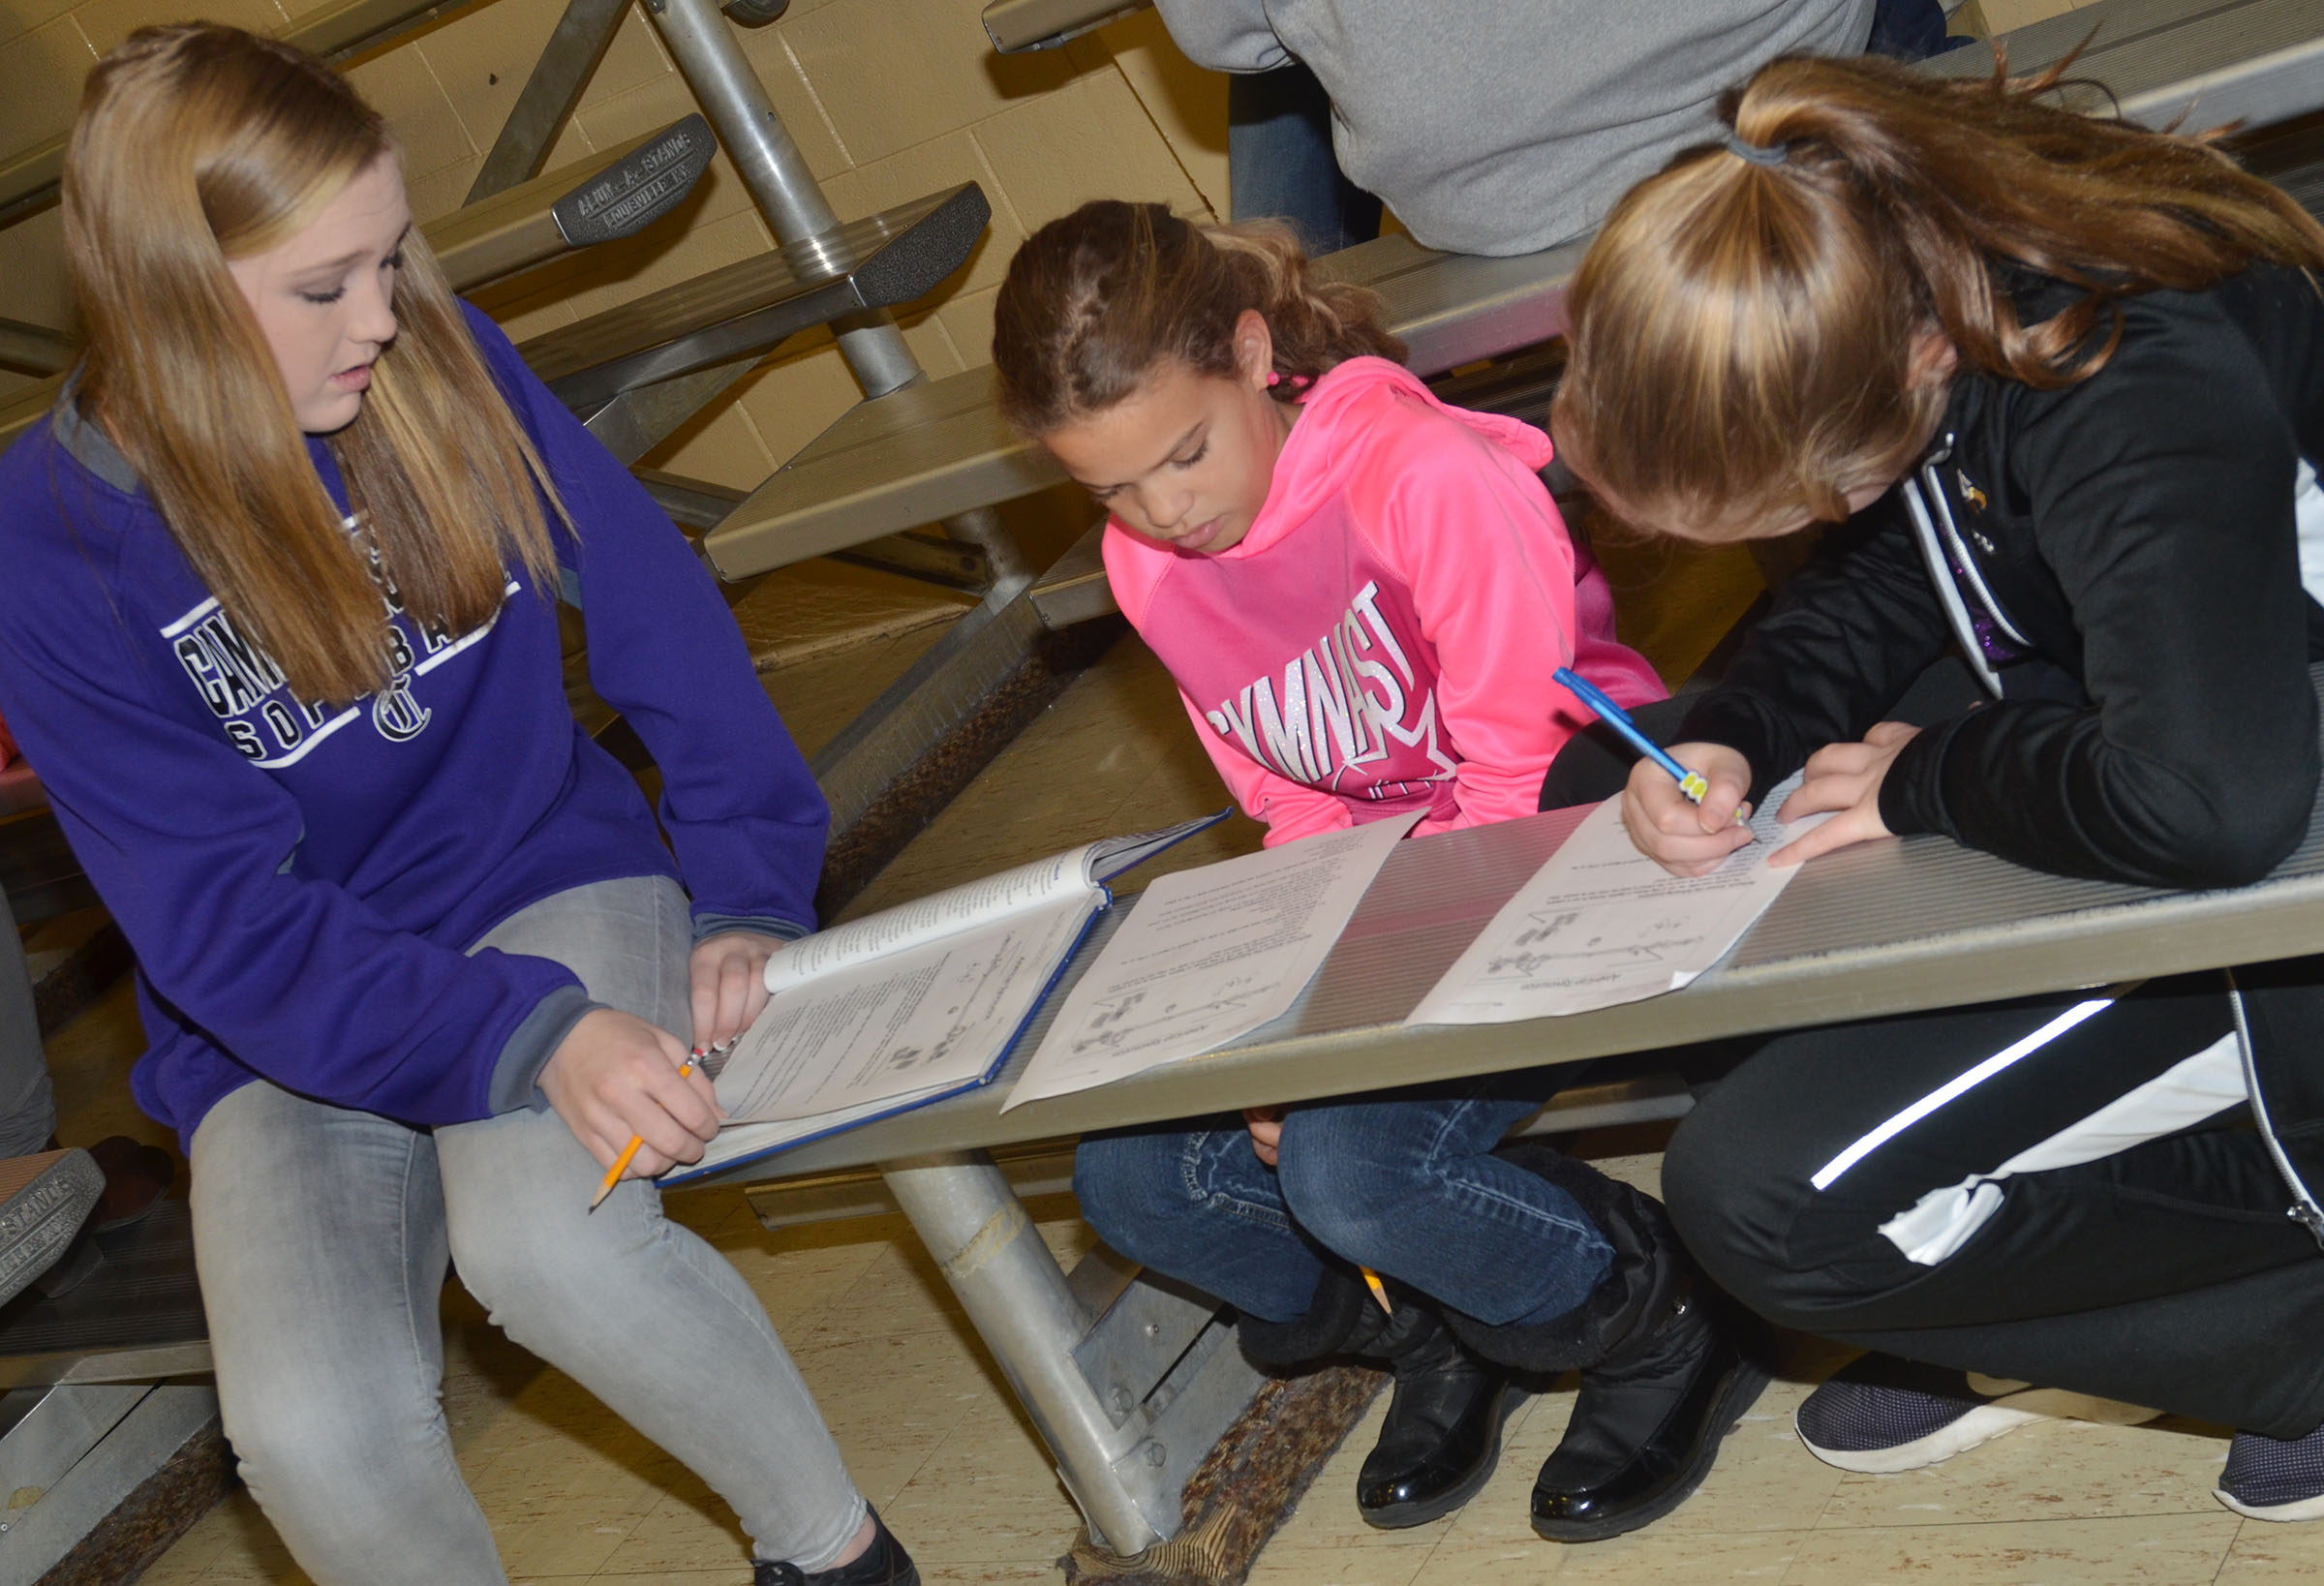 CMS eighth-grader Catlyn Clausen, at left, works with fifth-graders Arisha Francis, center, and Ava Hughes to answer questions about the American Revolution.